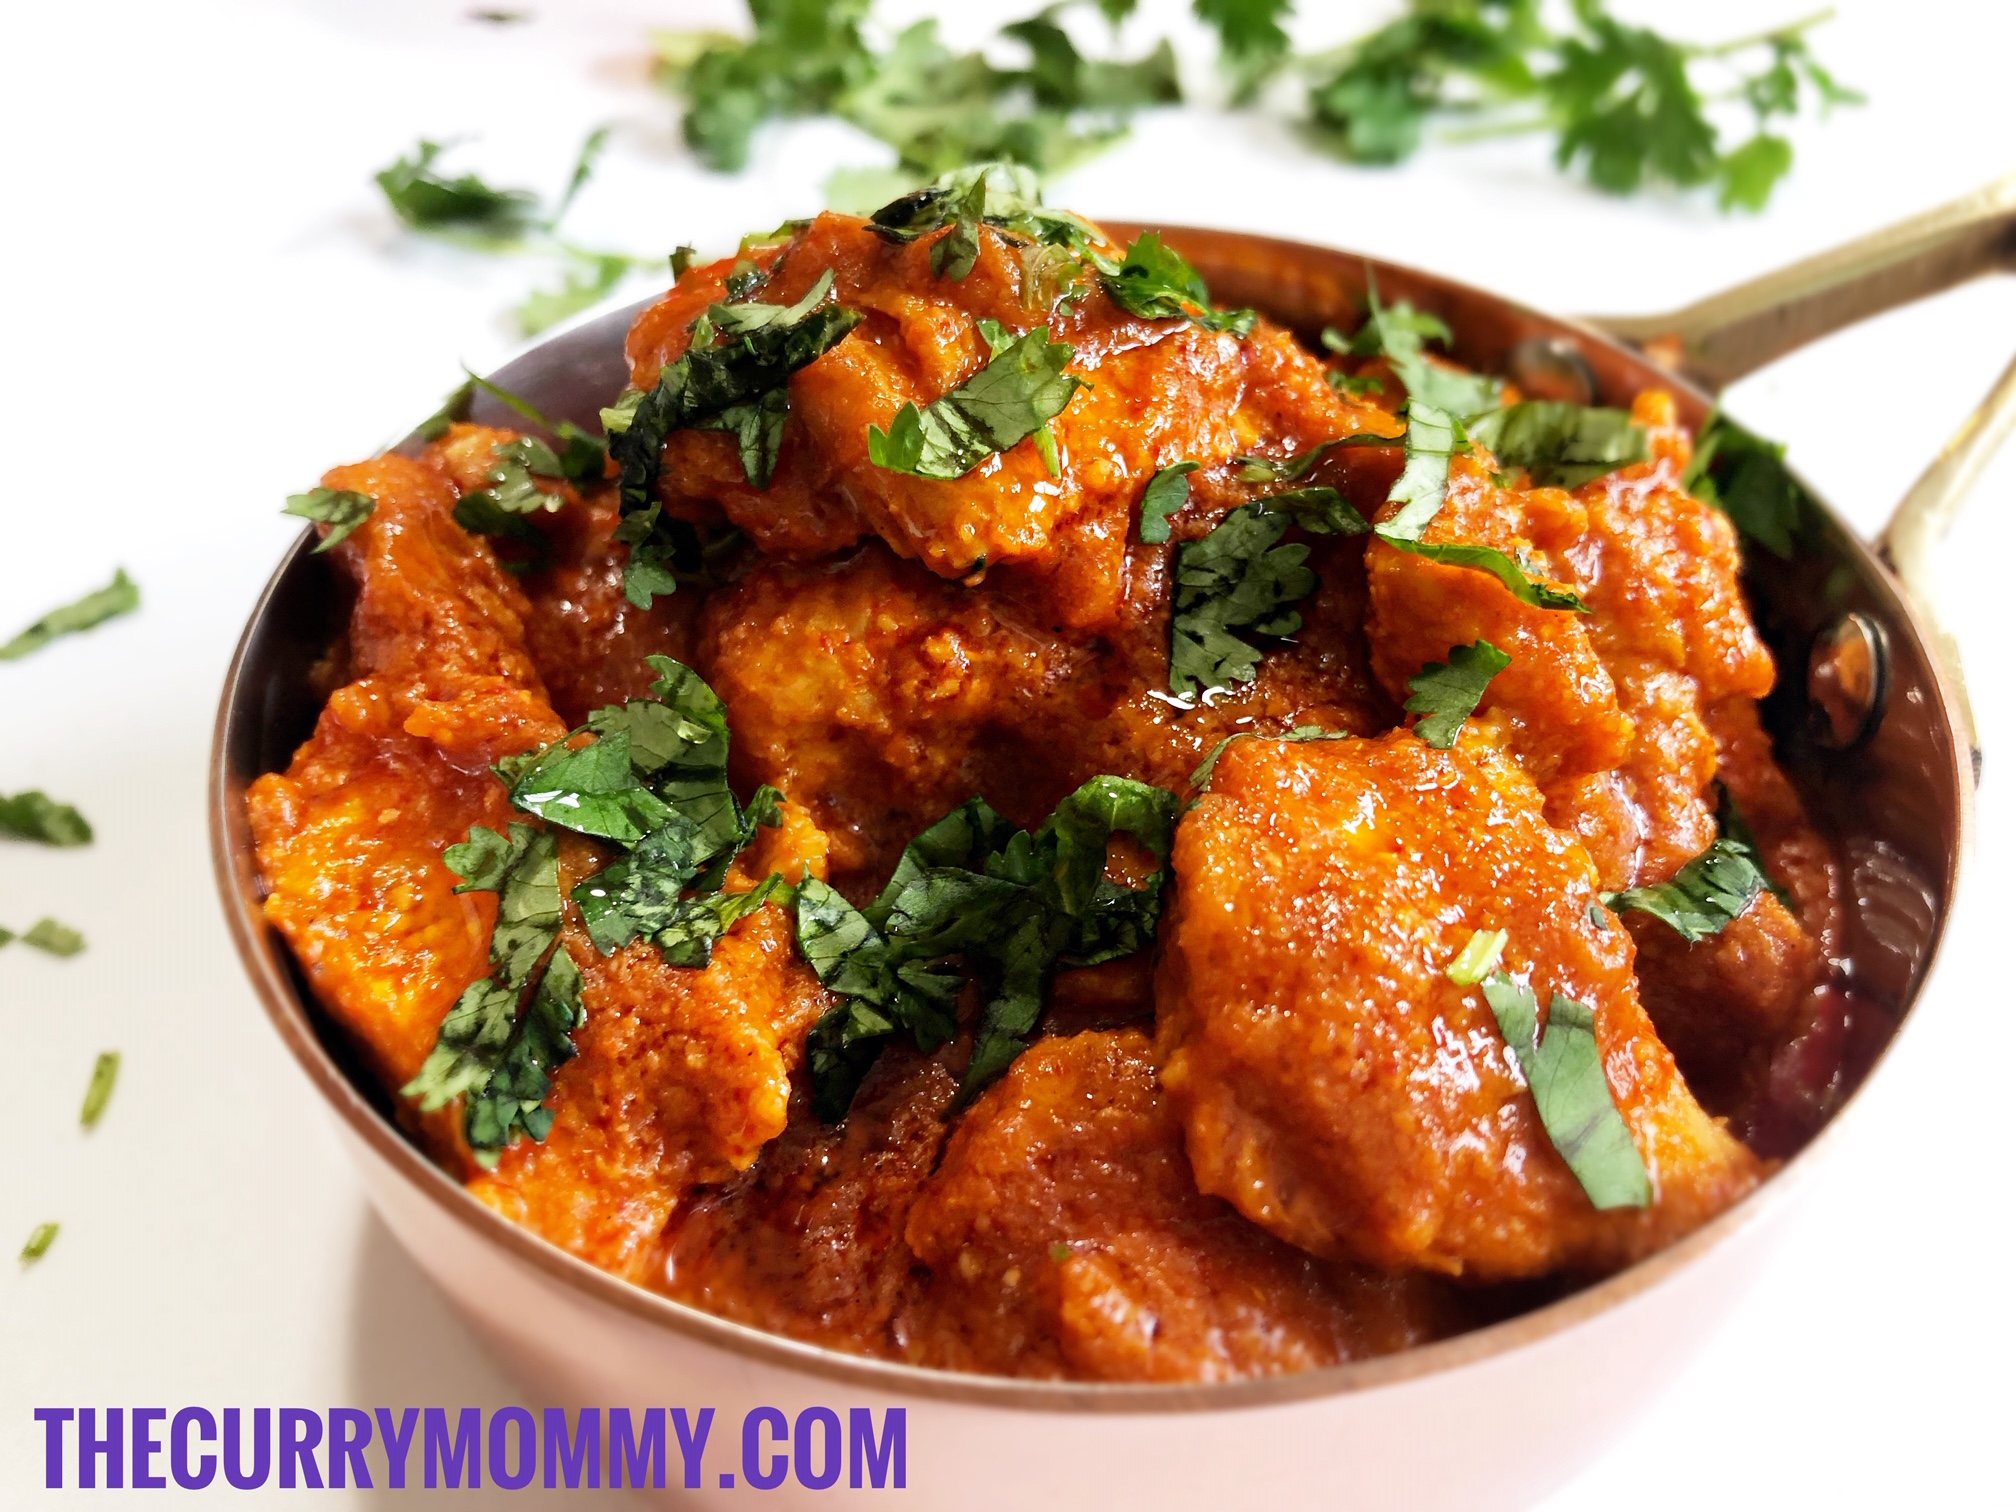 the curry mommy classic recipe using chicken breast and fresh ingredients